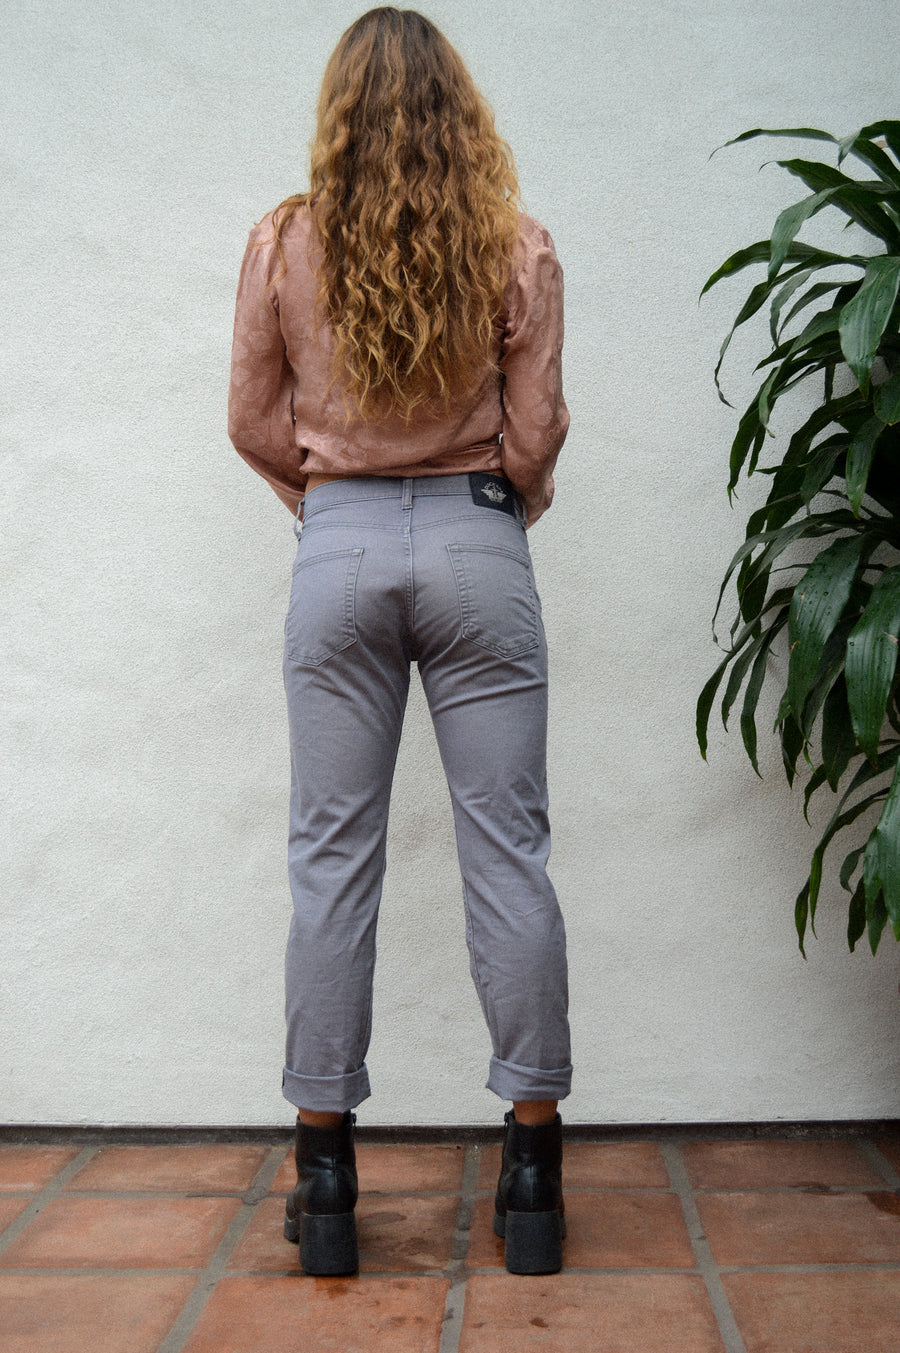 Gray Dockers High-Wasted Jeans || Aesthetic clothing, Dockers, jeans, hipster clothing, winter pants, winter style, high-wasted pants, work